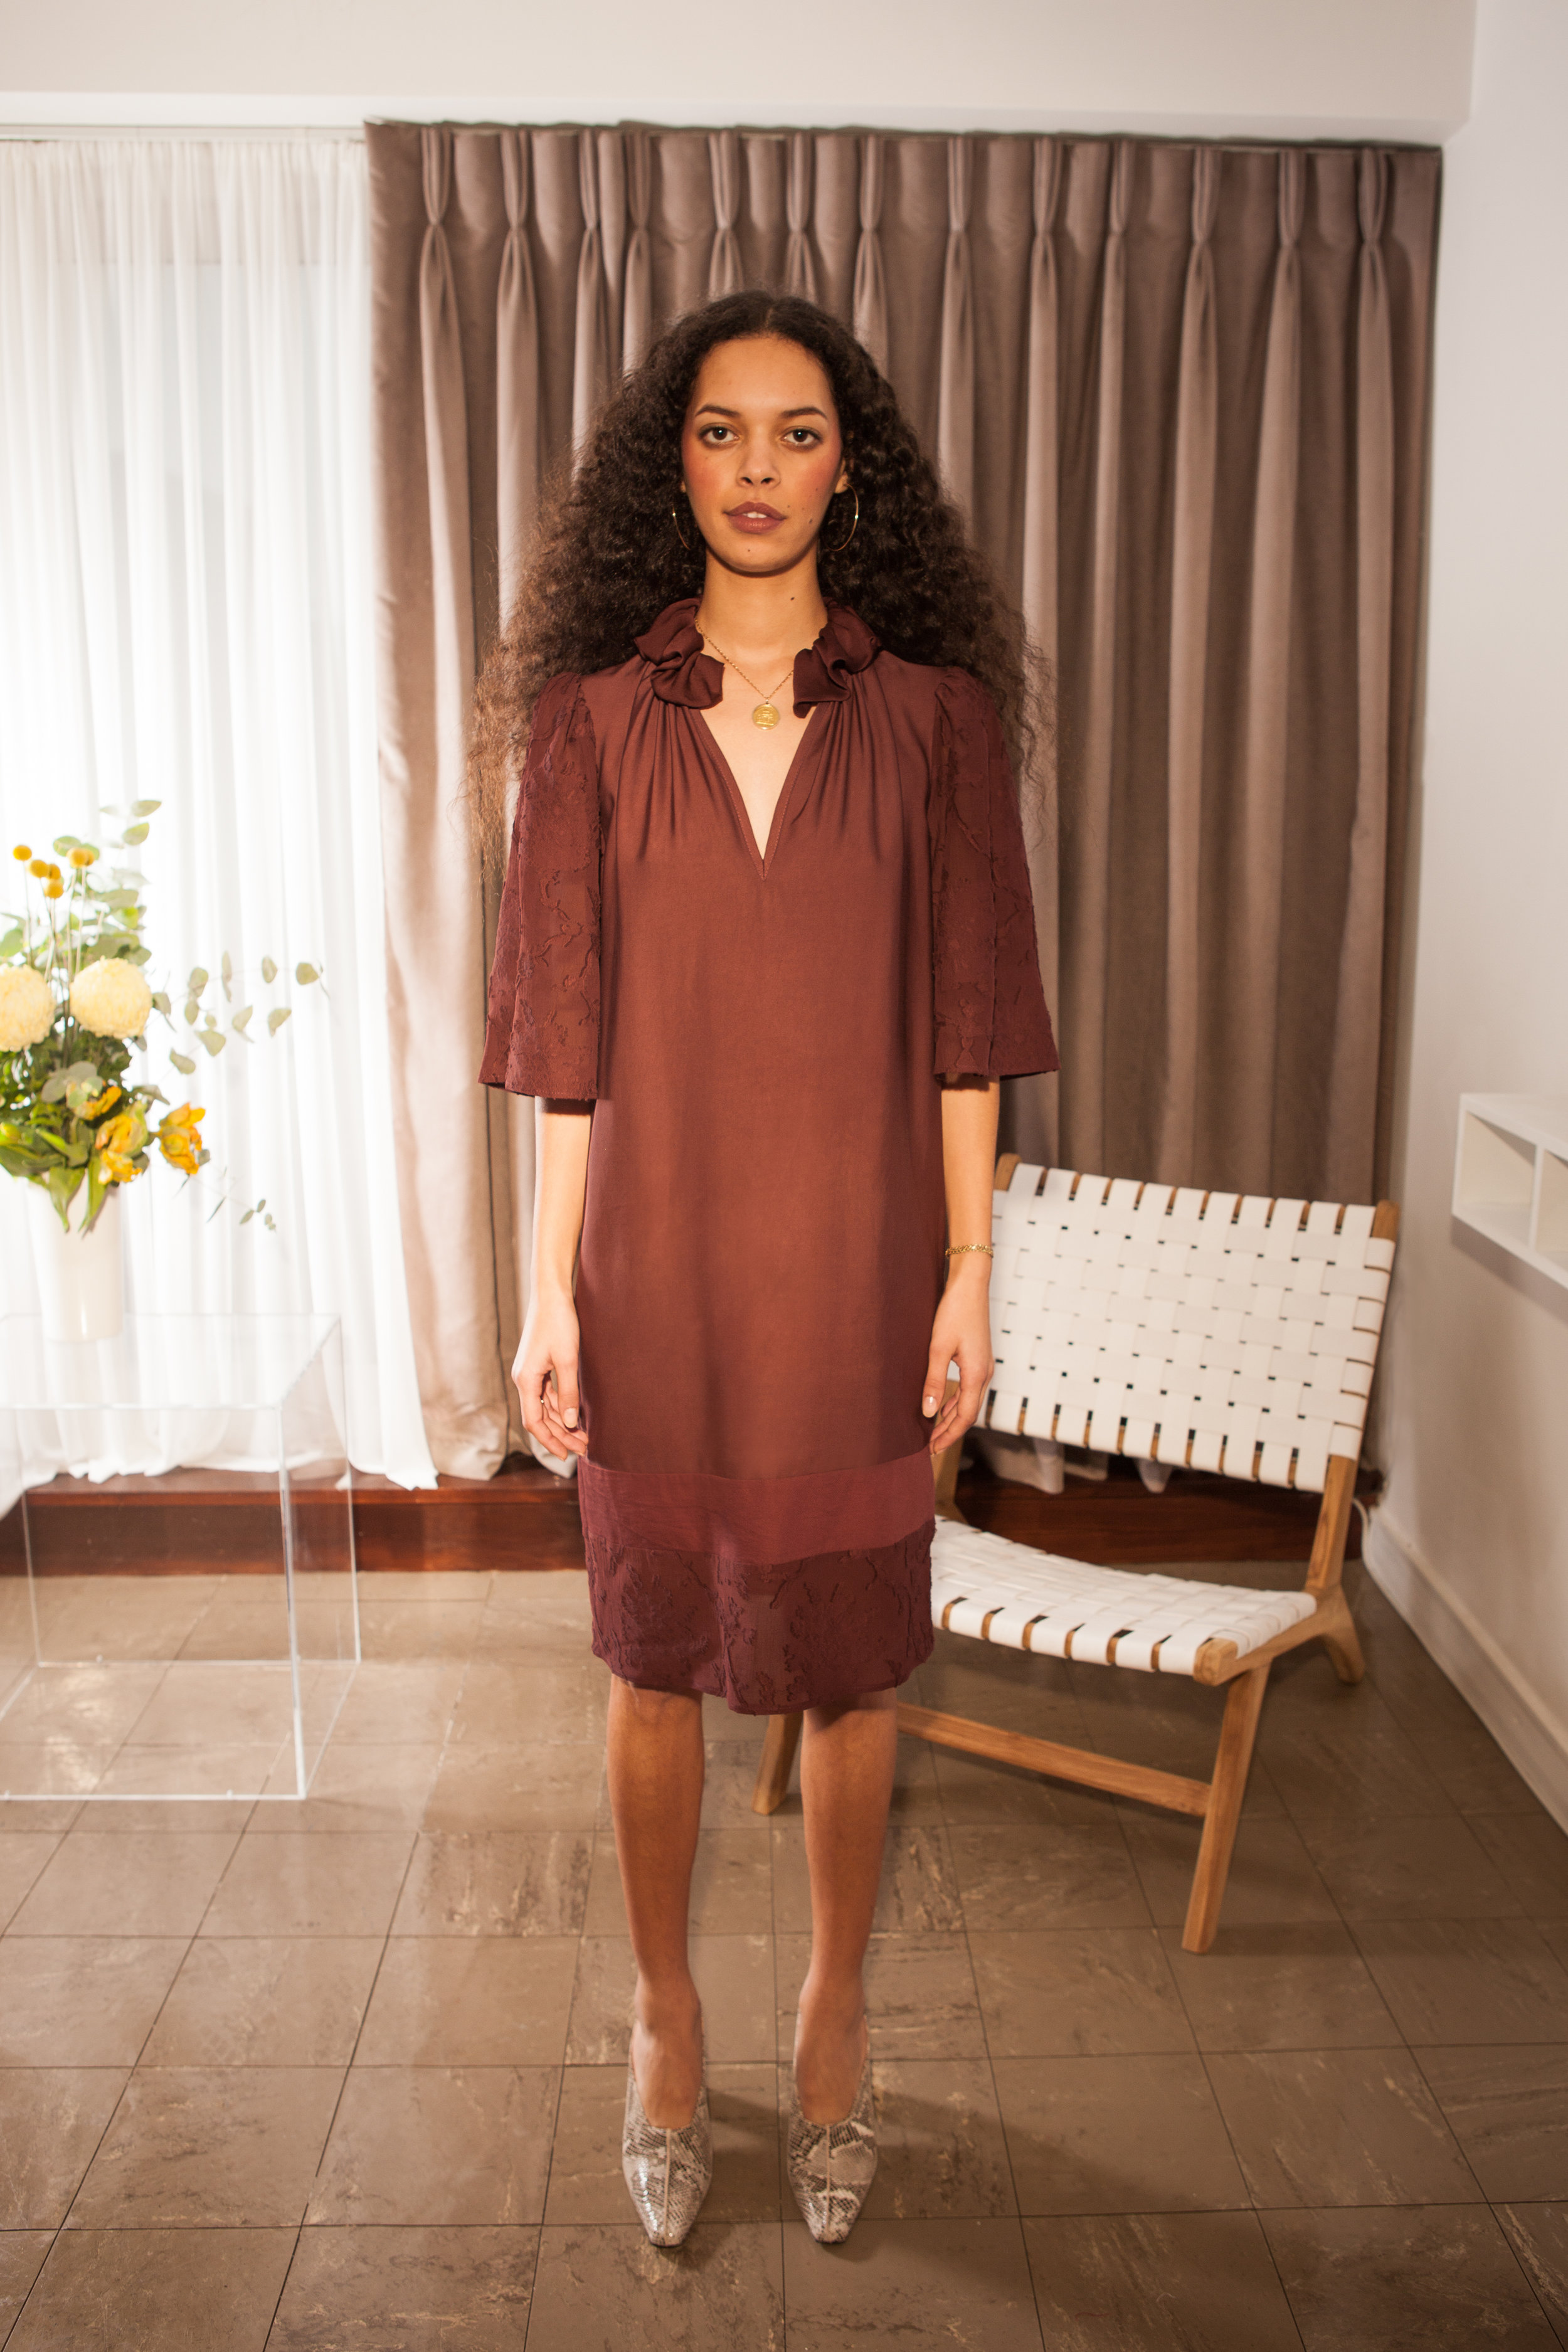 Sustainably made purple dress by Baue.jpg